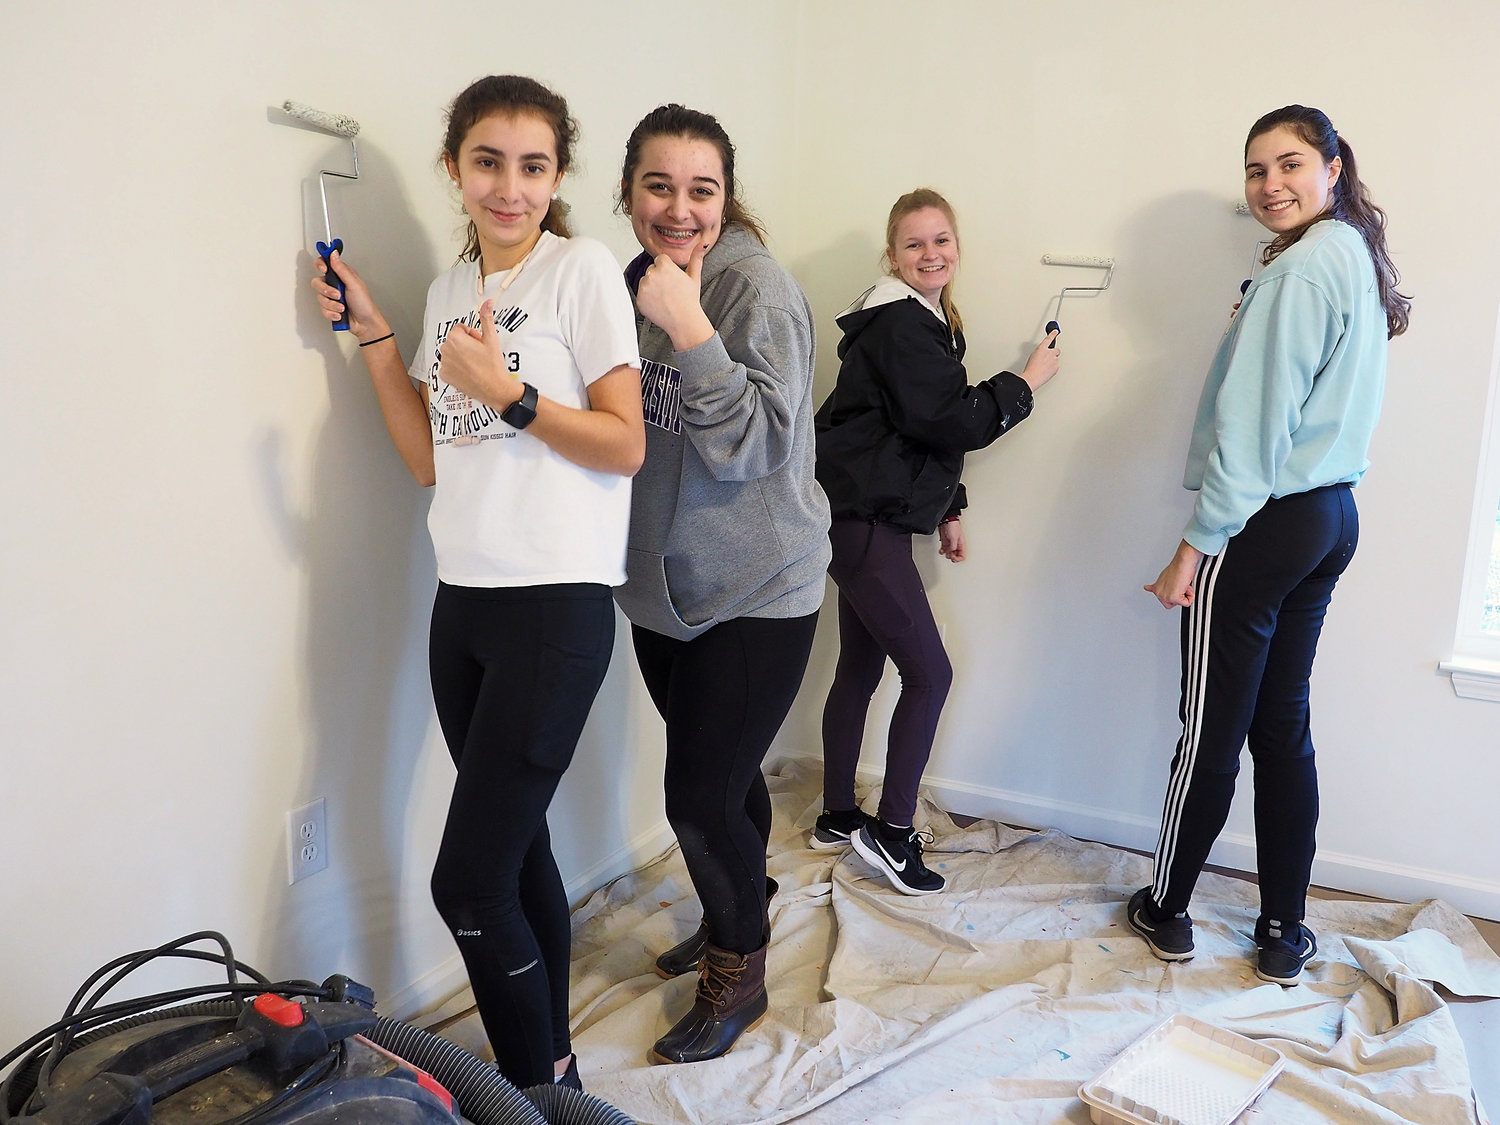 Volunteers were happy to help with the Habitat for Humanity build. Northwood juniors Amber Haley, Peyton Casey, Sarah Fowler and Jillian Hold worked on painting the interior of the home.